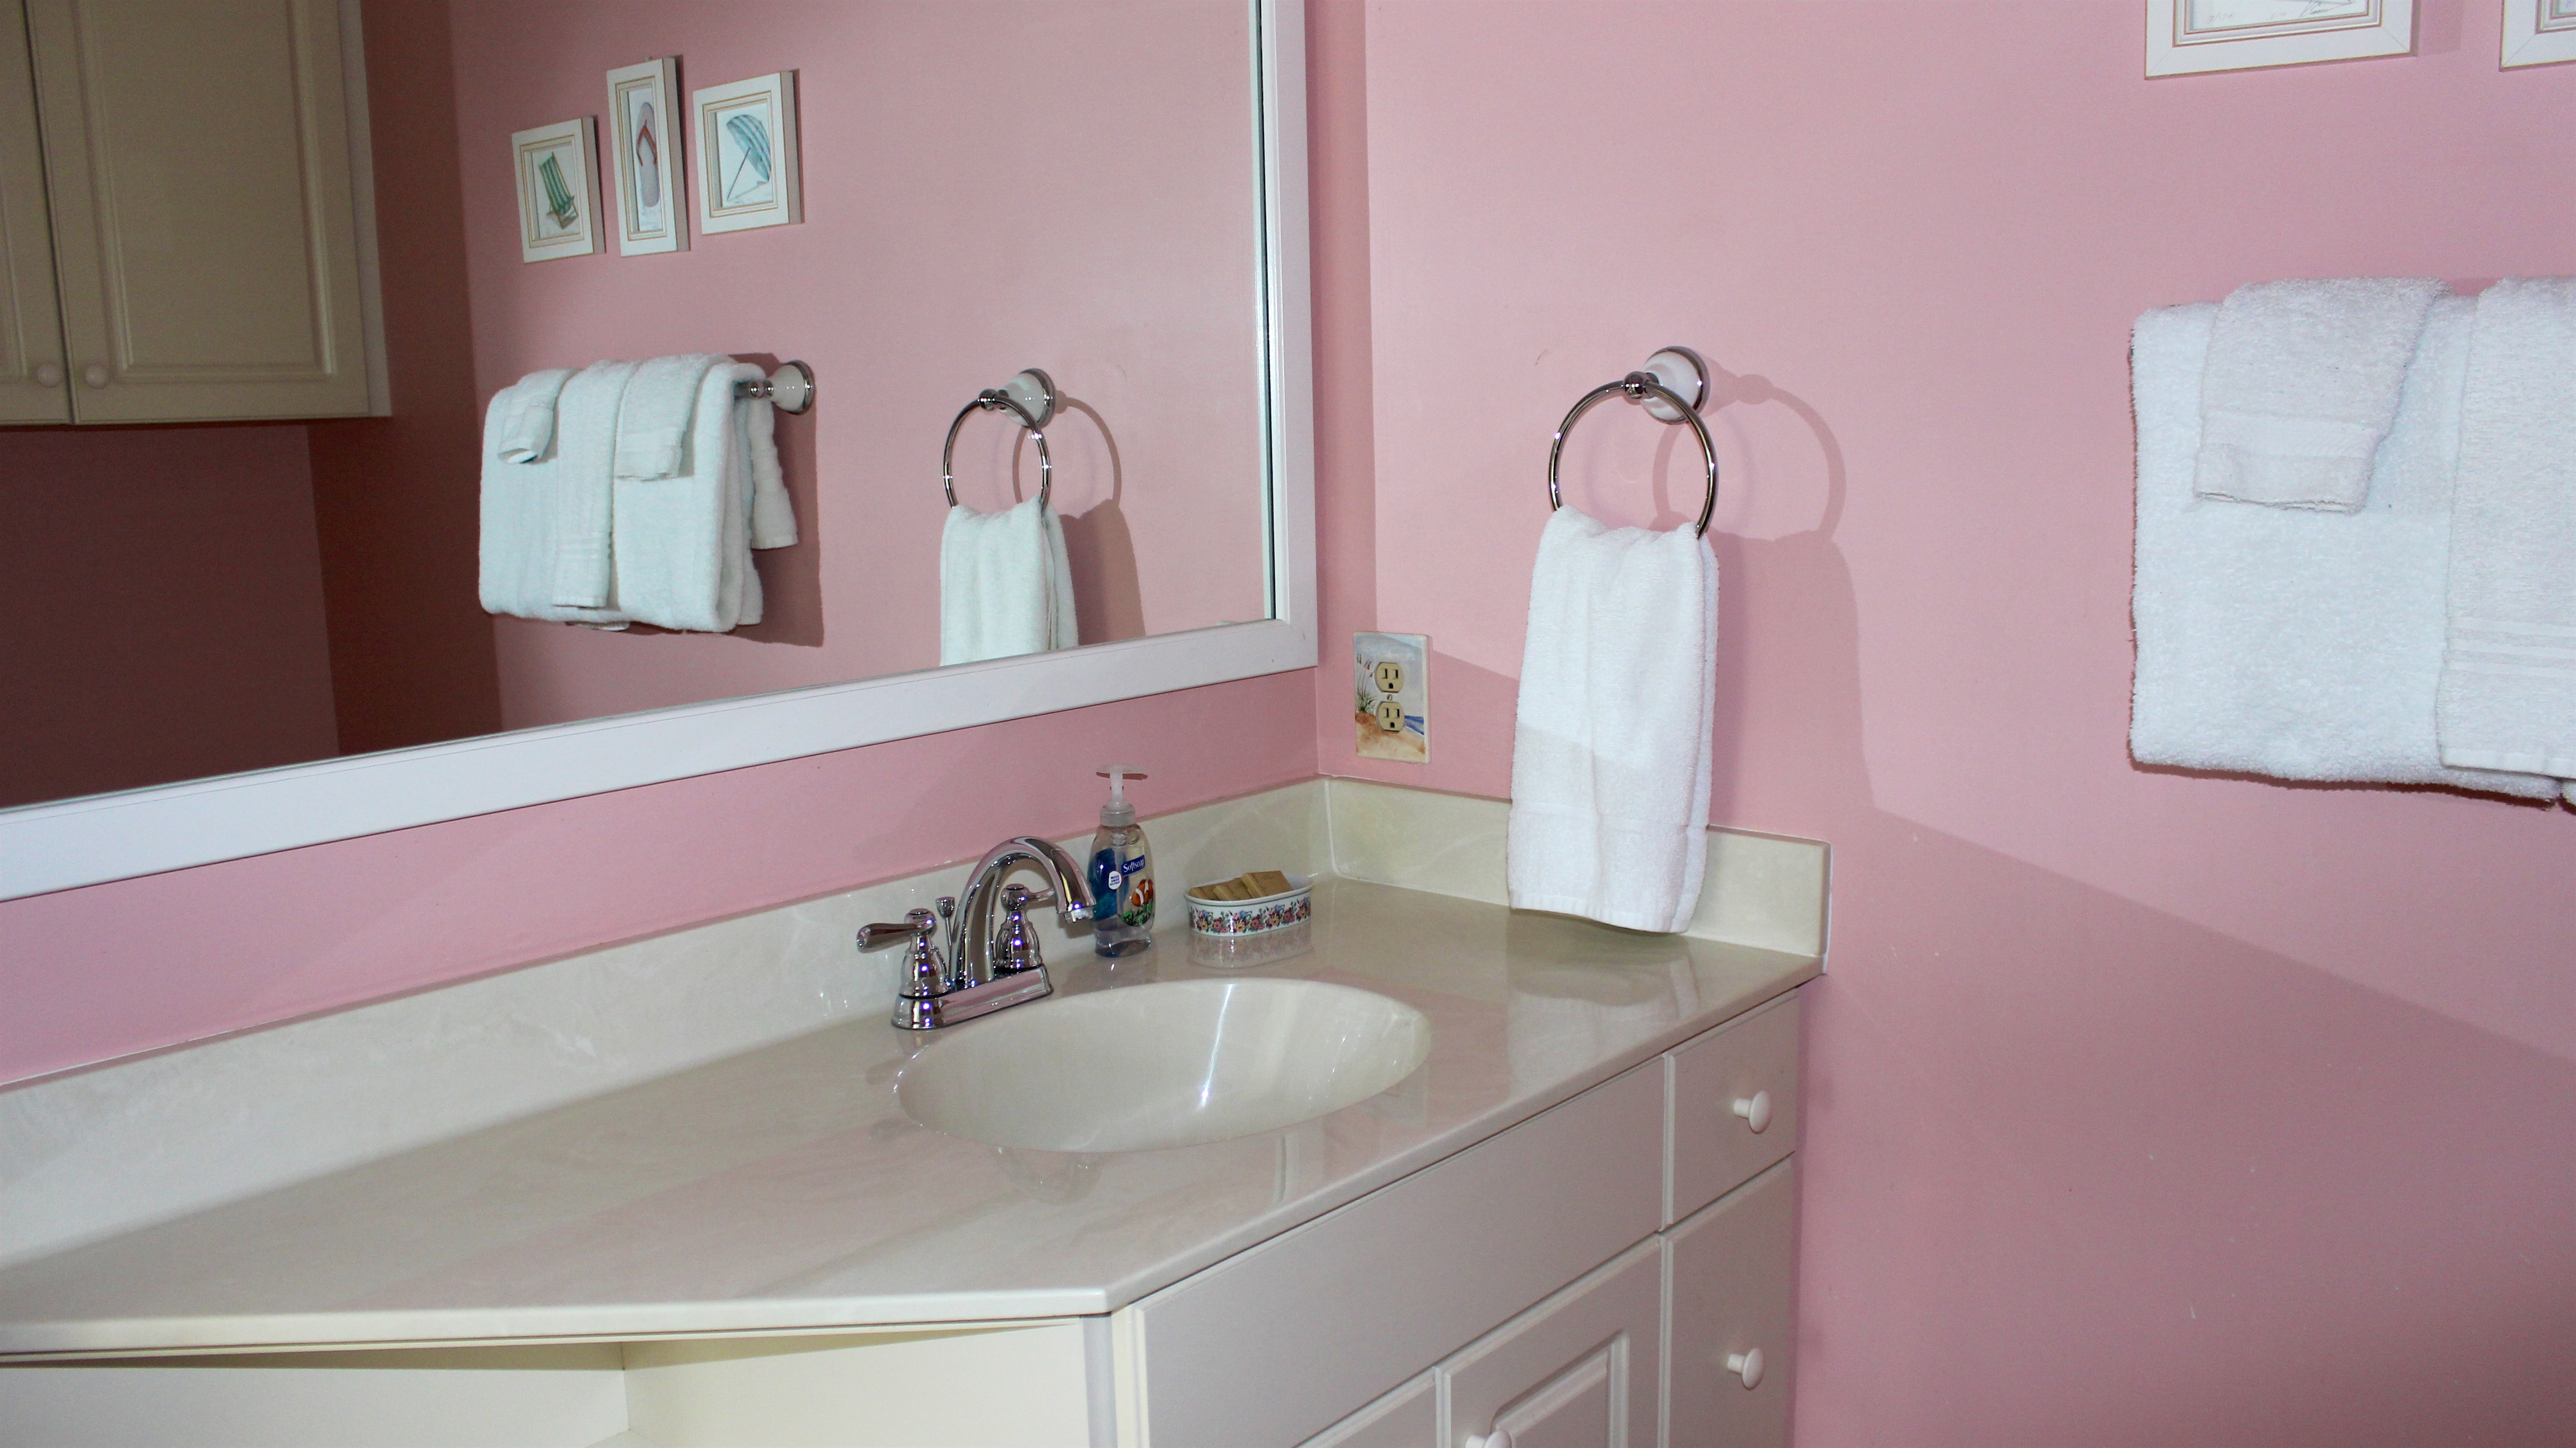 The adjoining bath has a large vanity area.